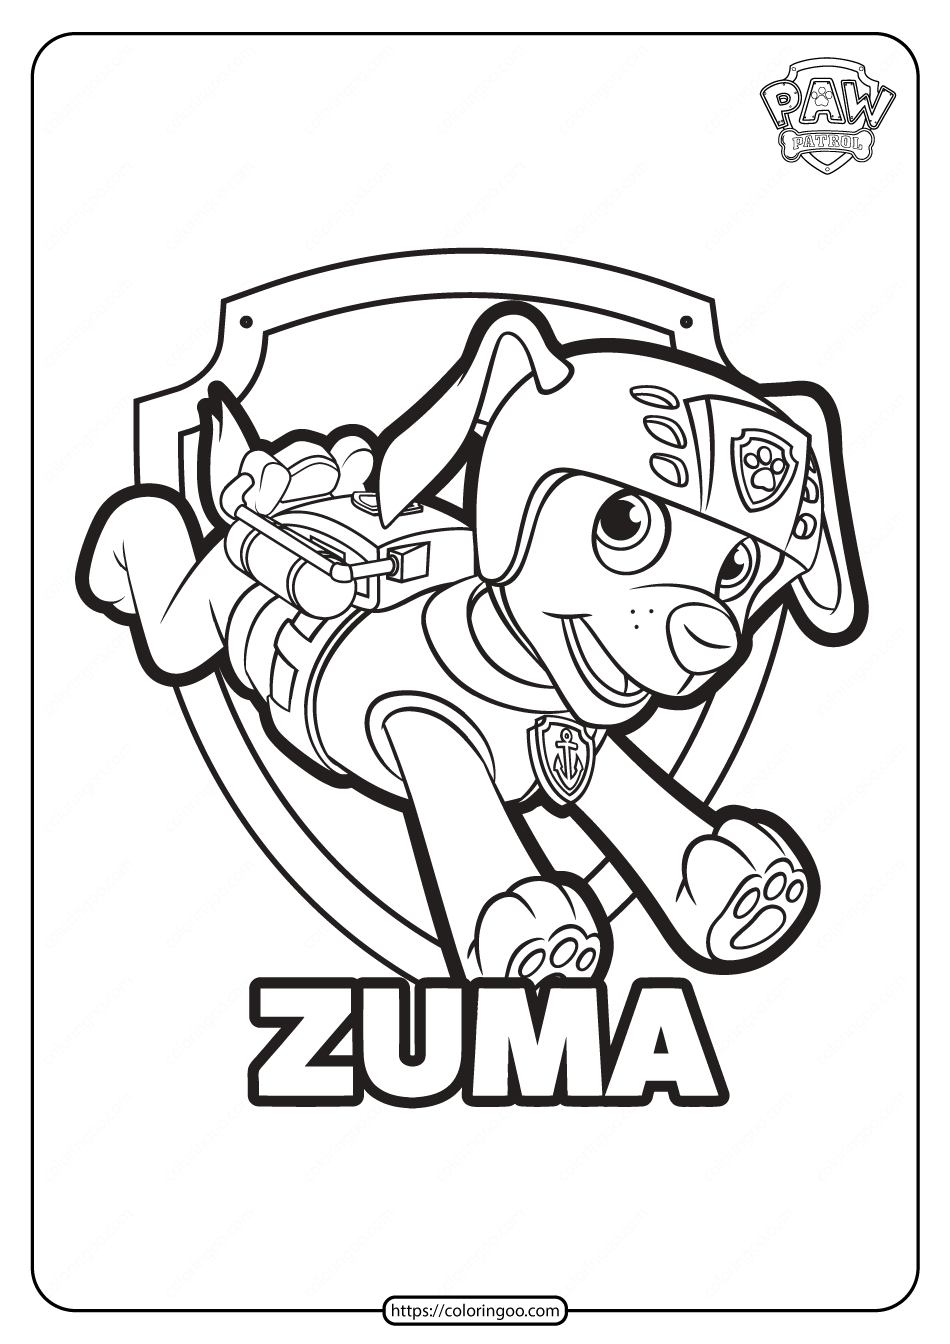 Free Printable Paw Patrol Zuma Coloring Pages 1 In 2021 Paw Patrol Coloring Paw Patrol Printables Paw Patrol Coloring Pages [ 1344 x 950 Pixel ]